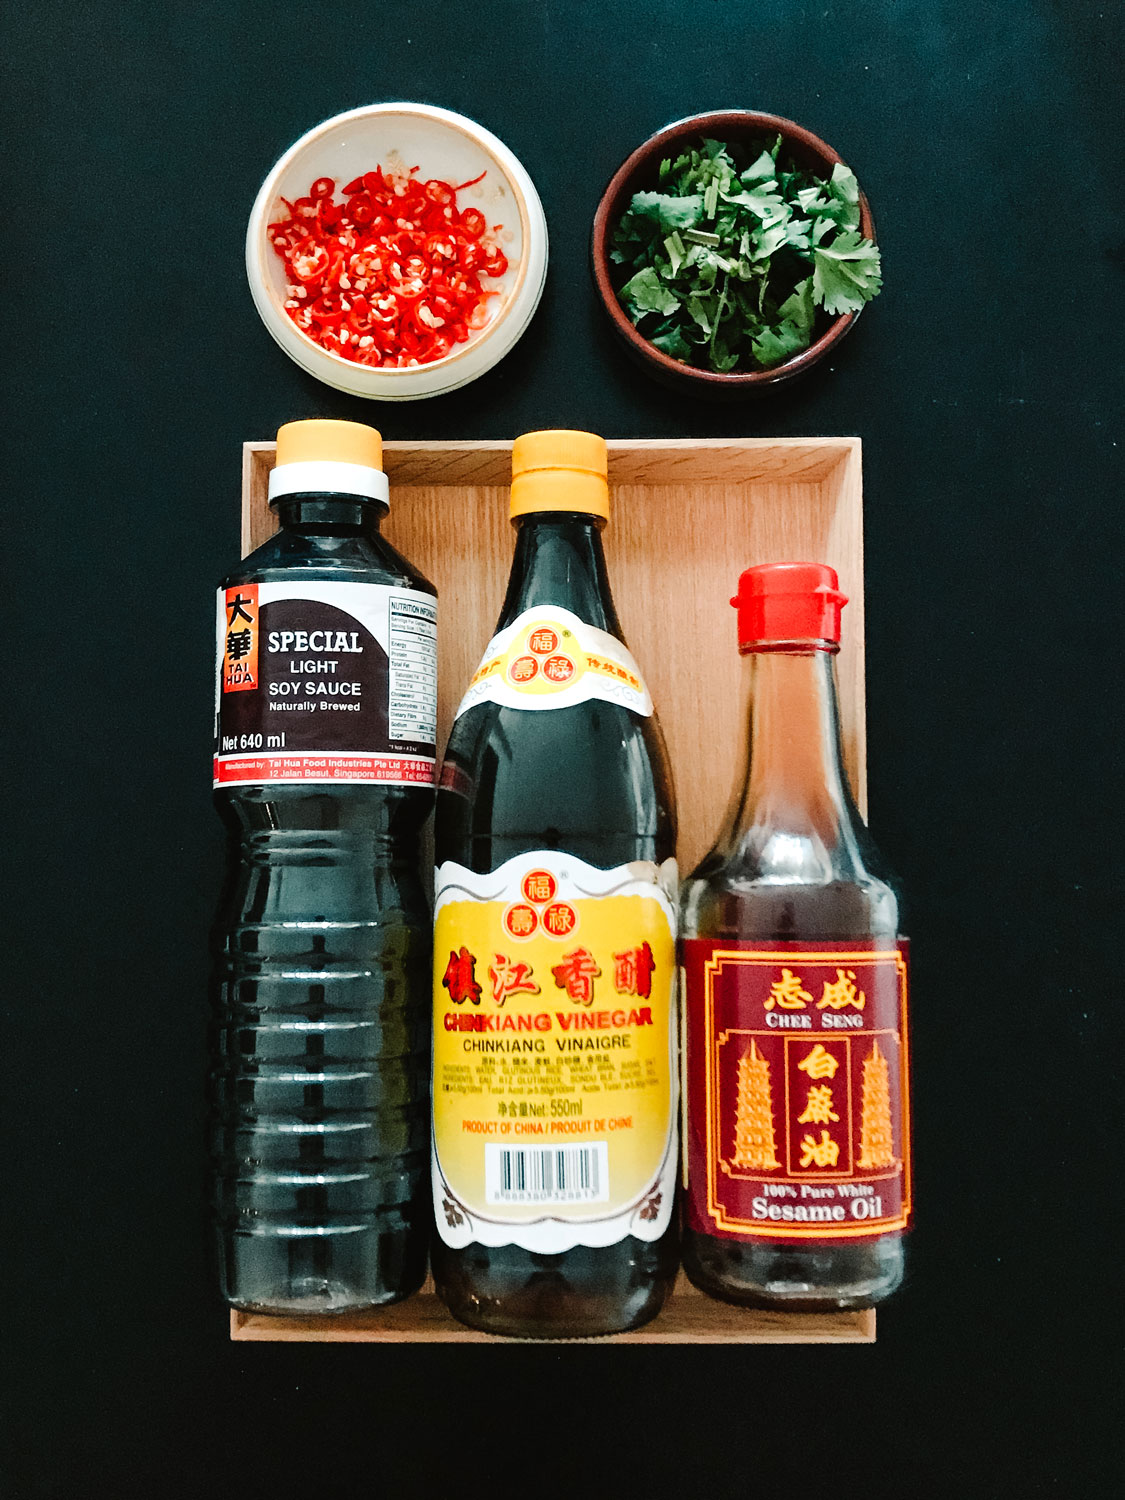 A bottle of sesame oil, soy sauce and black vinegar with small dishes of chili rings and coriander.